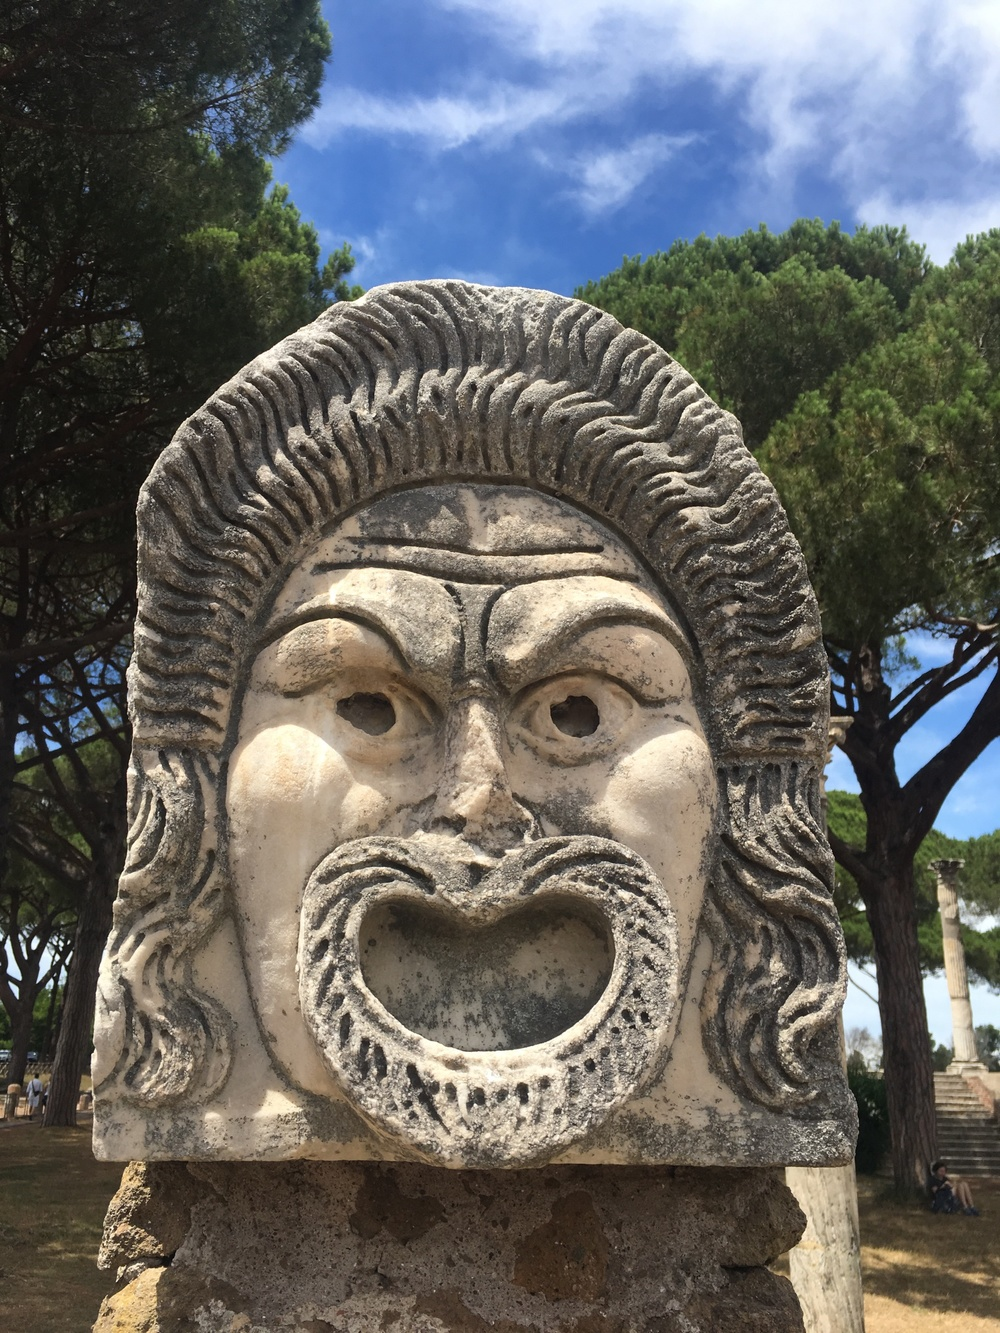 These guys were right next to the theater. Conflicting reports: Either they symbolized areas where residents could speak freely and voice concerns about Ostia, or they simply represented drama and theater. Either way, they were awesome.